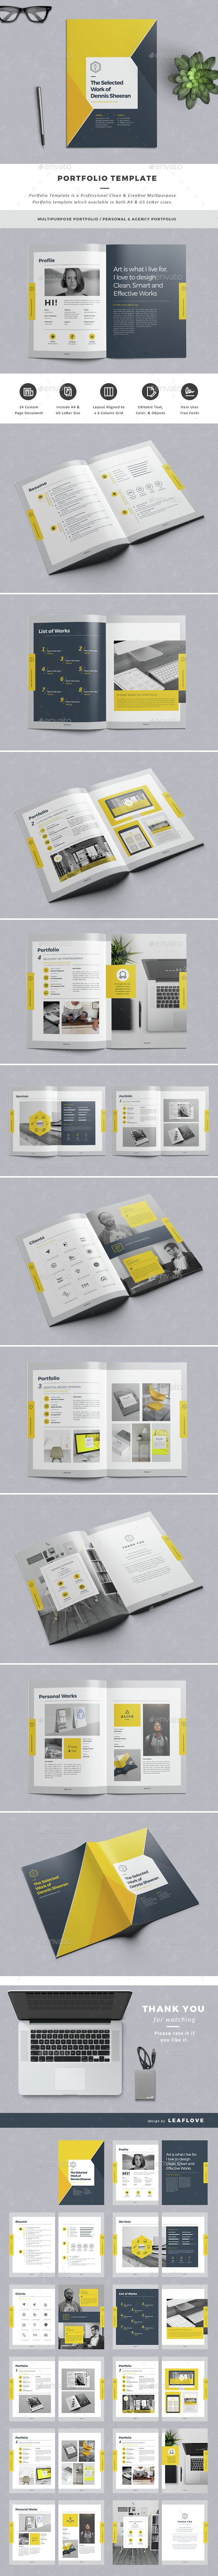 Portfolio  —  InDesign Template • Only available here! → https://graphicriver.net/item/portfolio/15204264?ref=pxcr